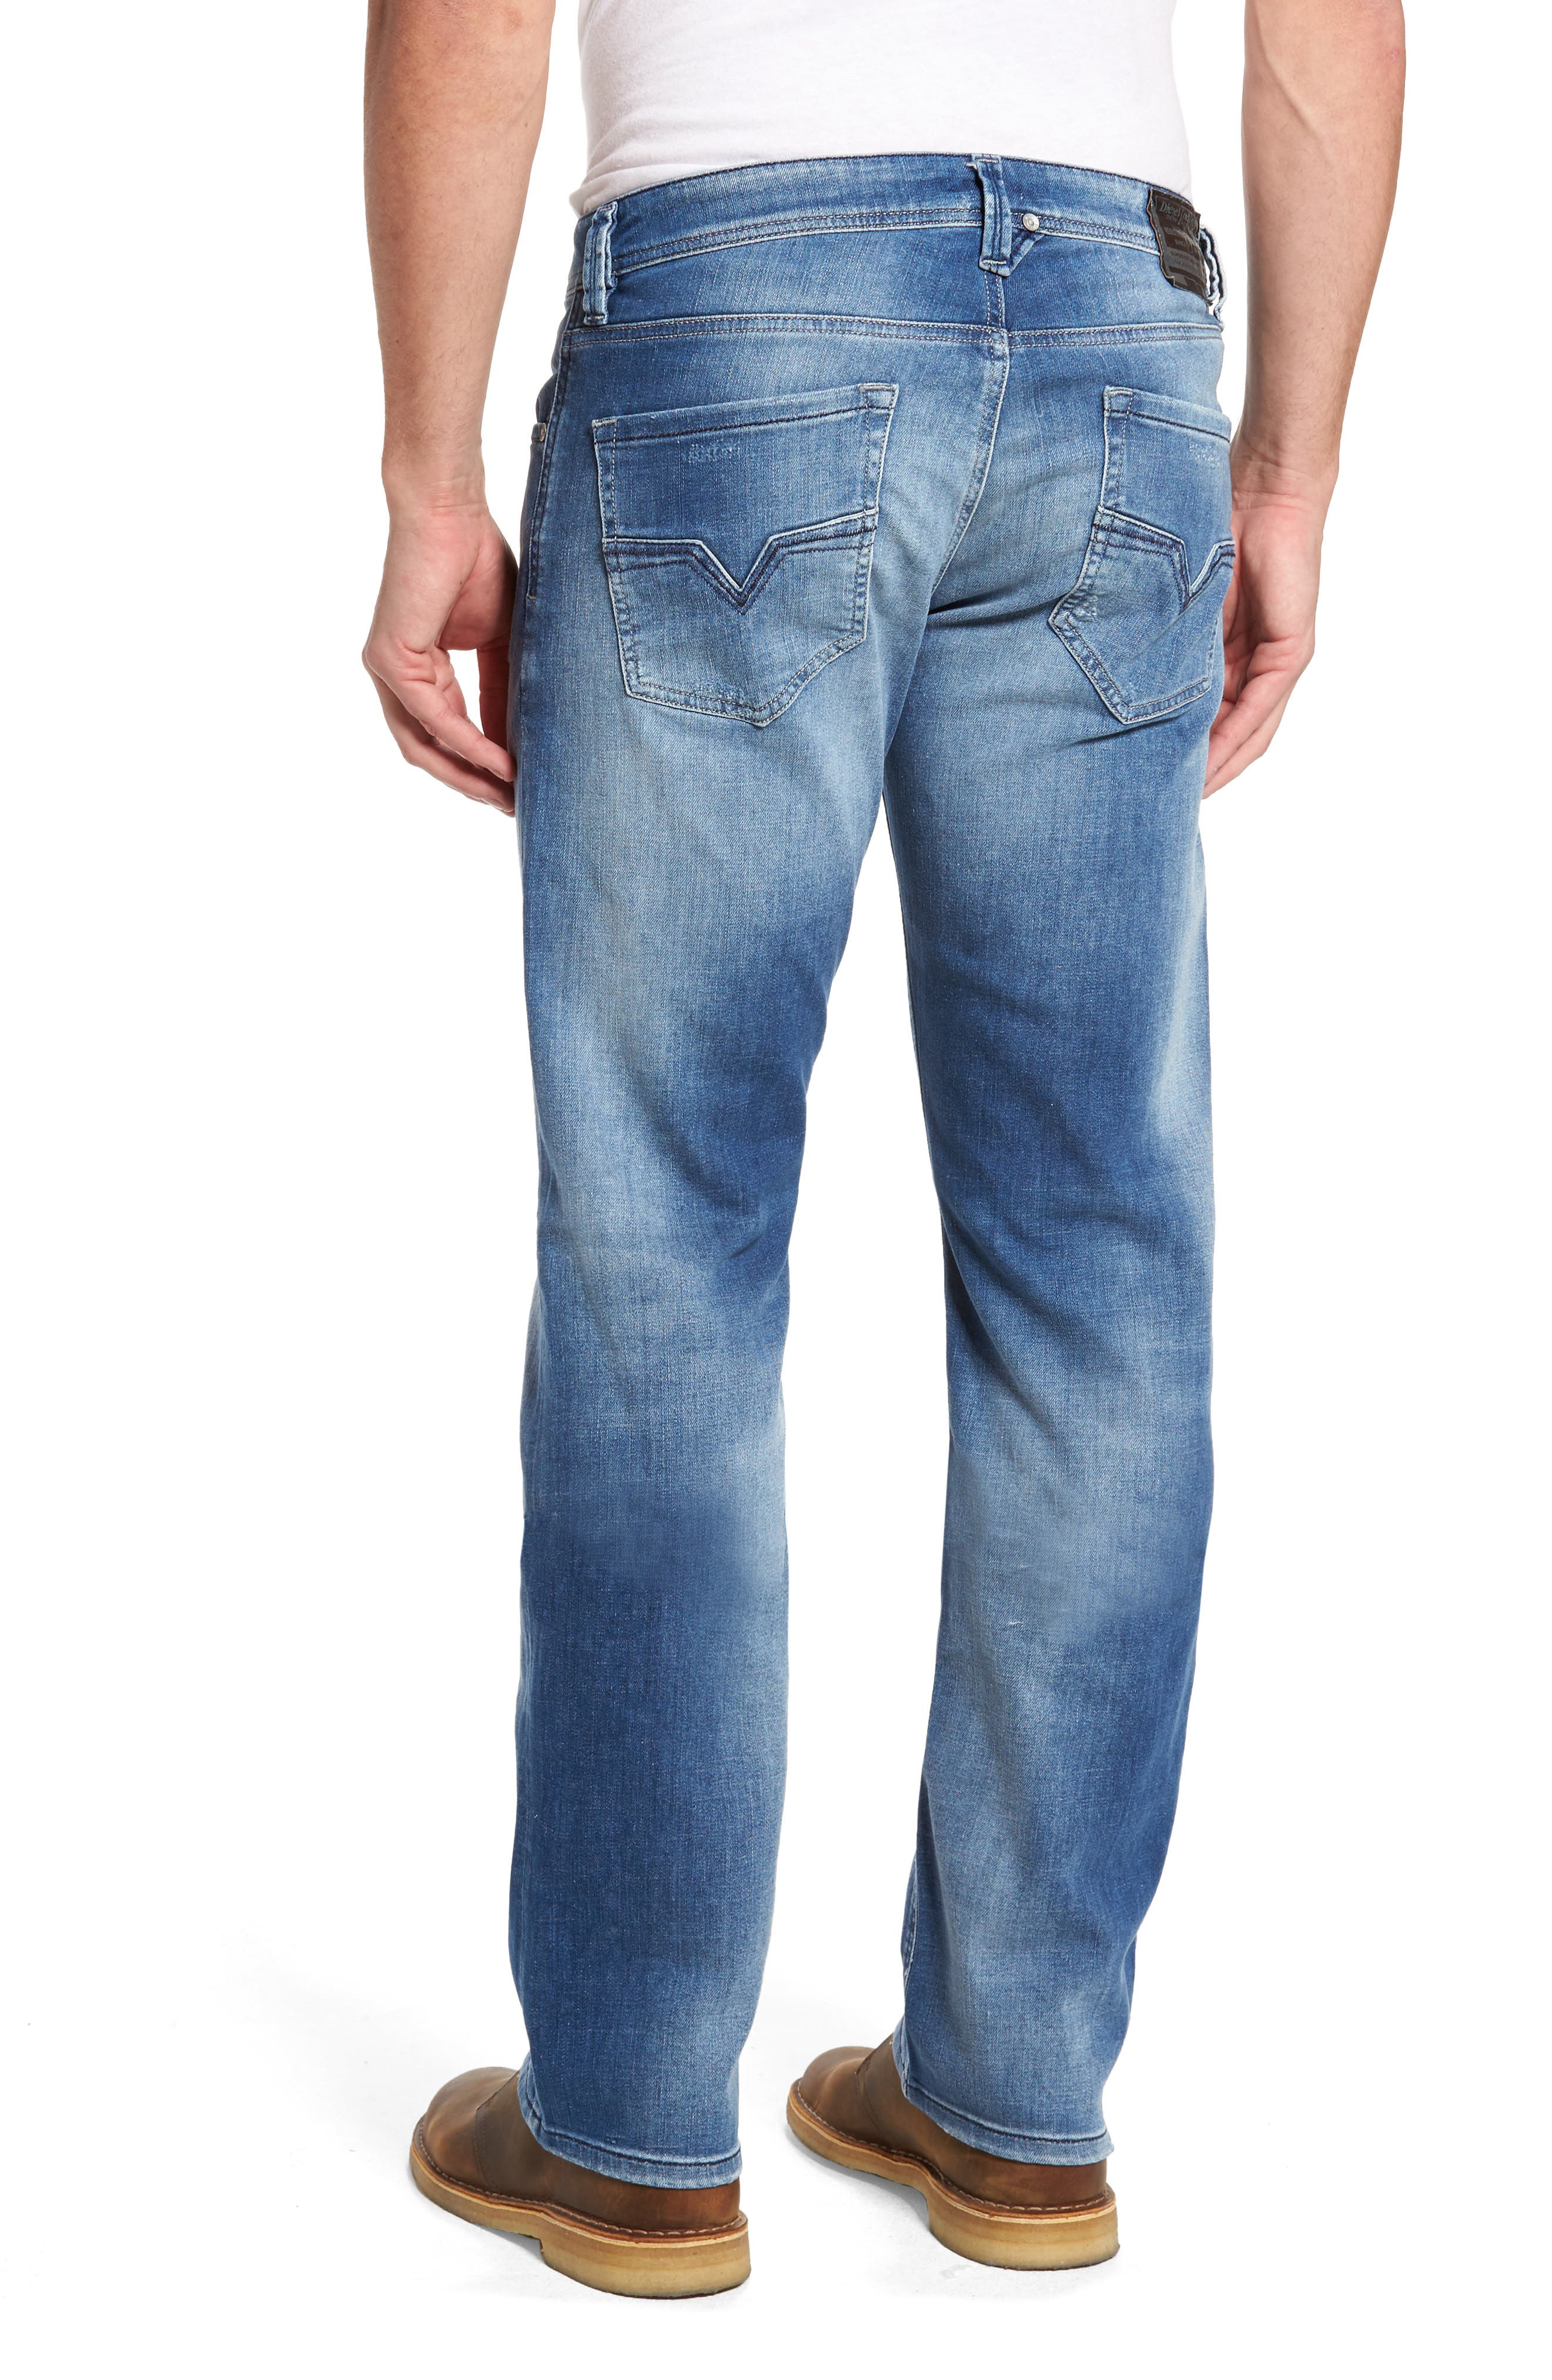 Larkee Relaxed Fit Jeans,                             Alternate thumbnail 2, color,